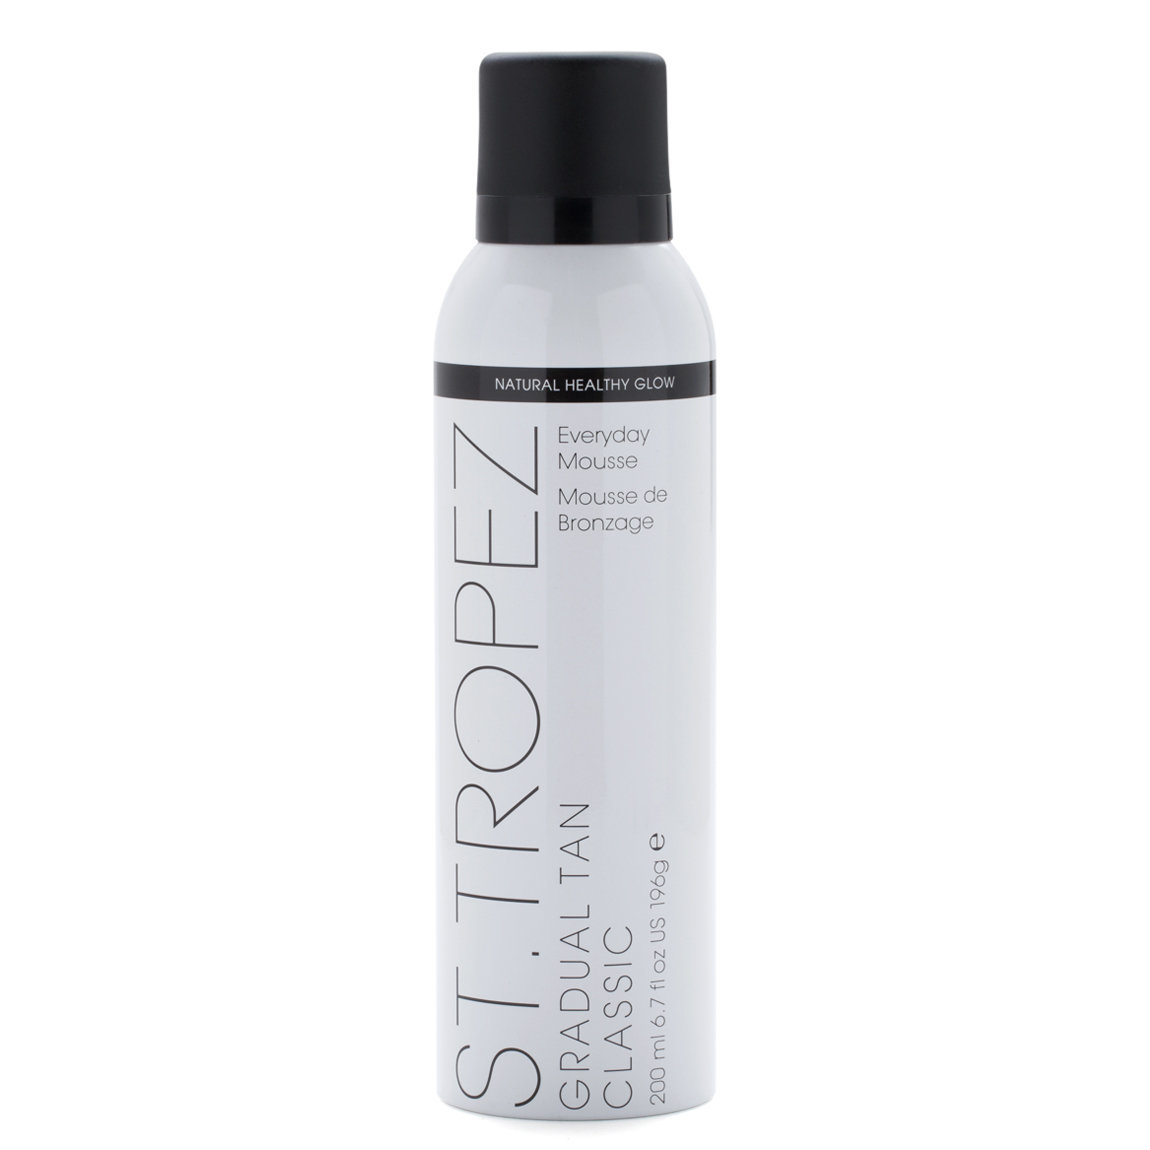 St. Tropez Gradual Tan Everyday Mousse product smear.